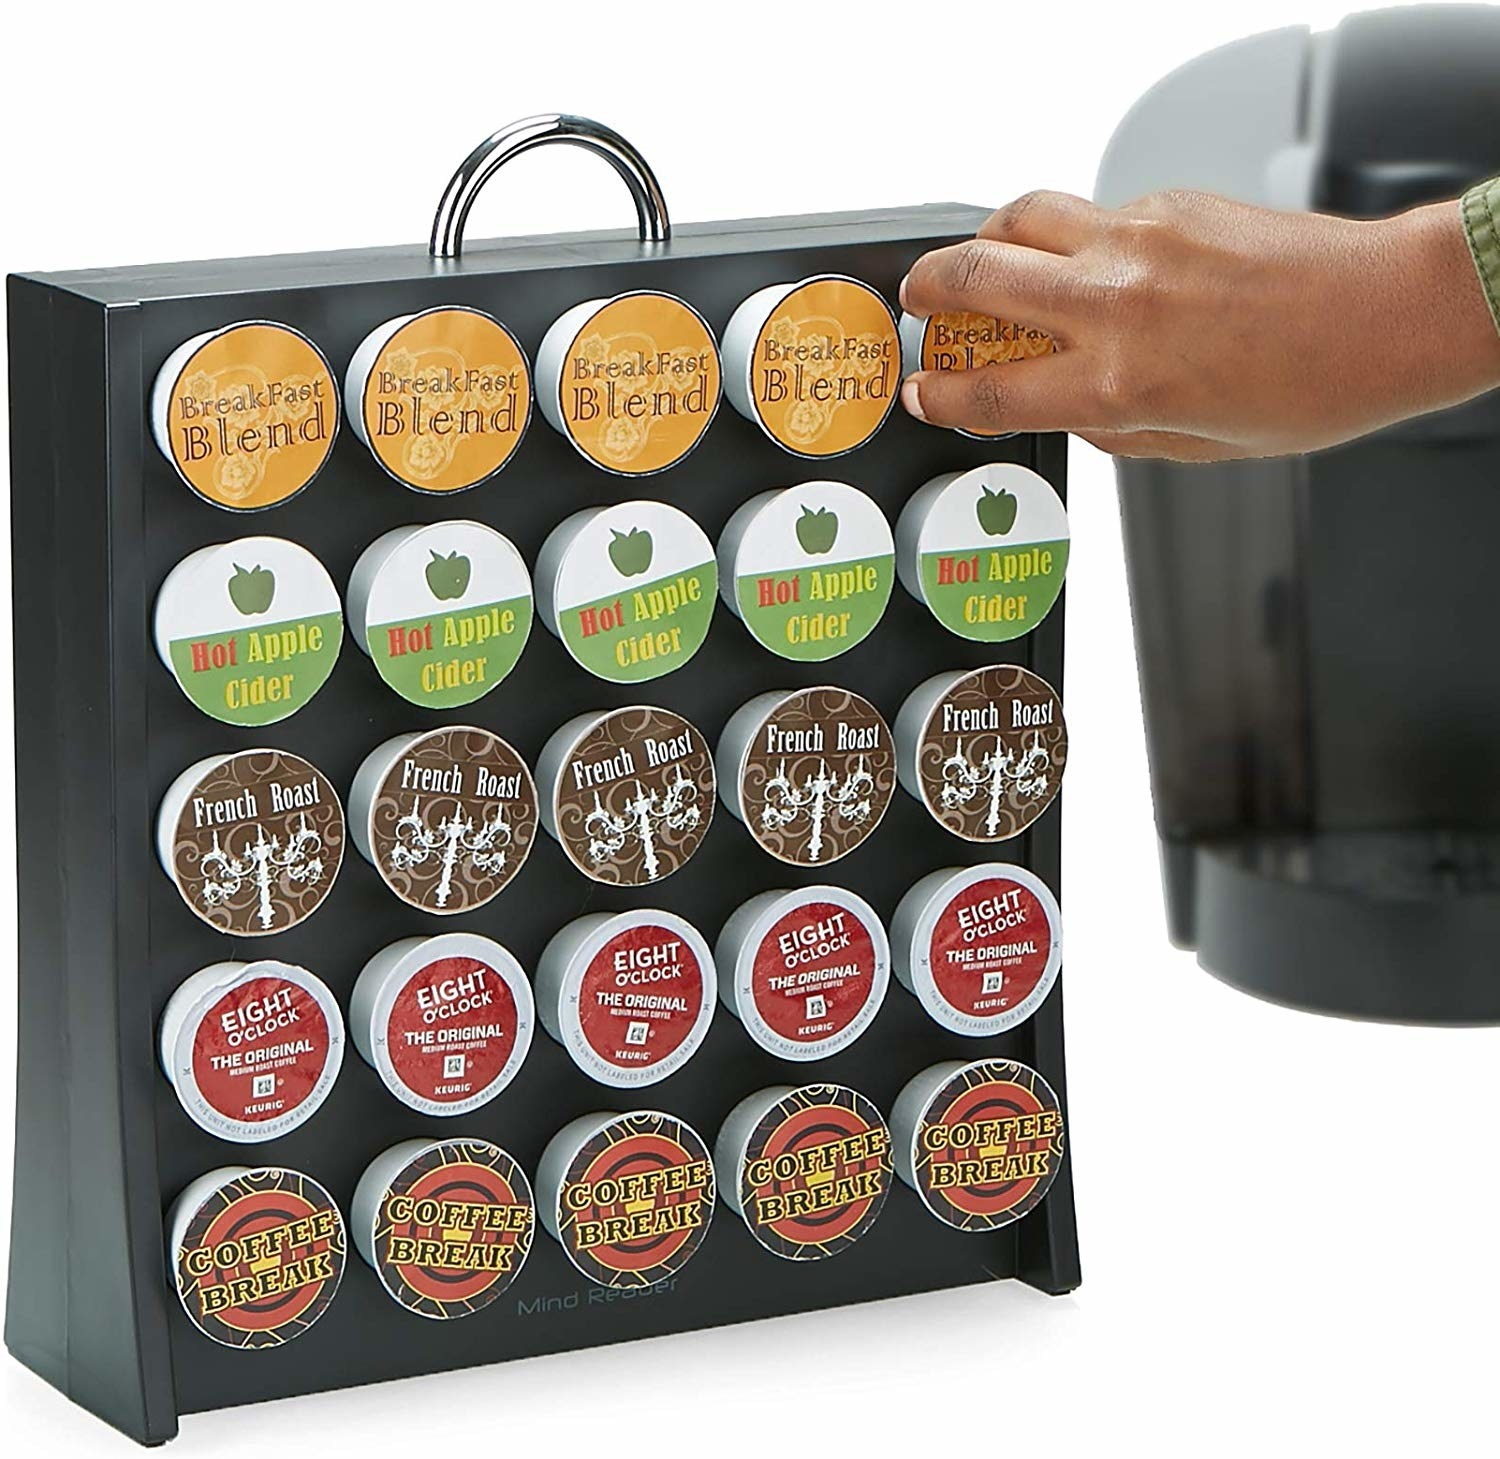 stand with a handle on top and the pods sticking in the front so you can see which coffee pod is which